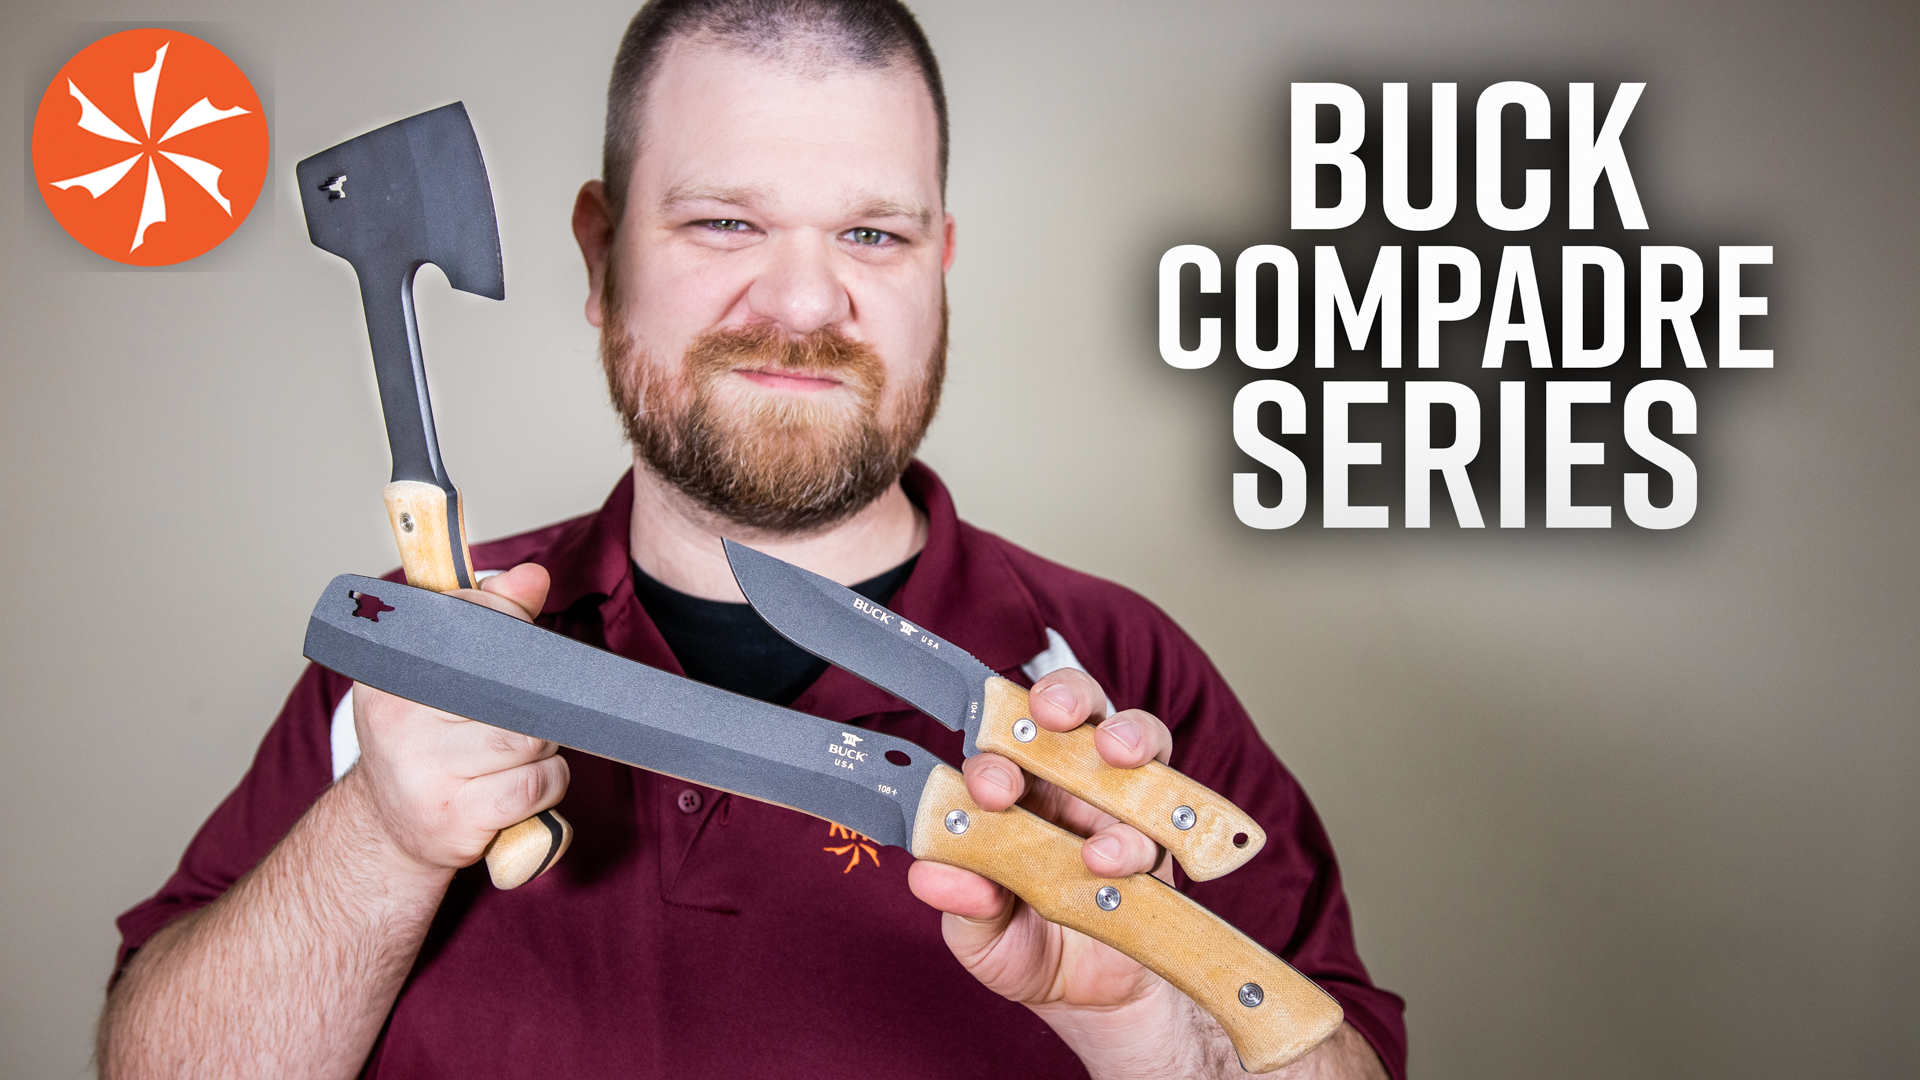 Buck compadre series